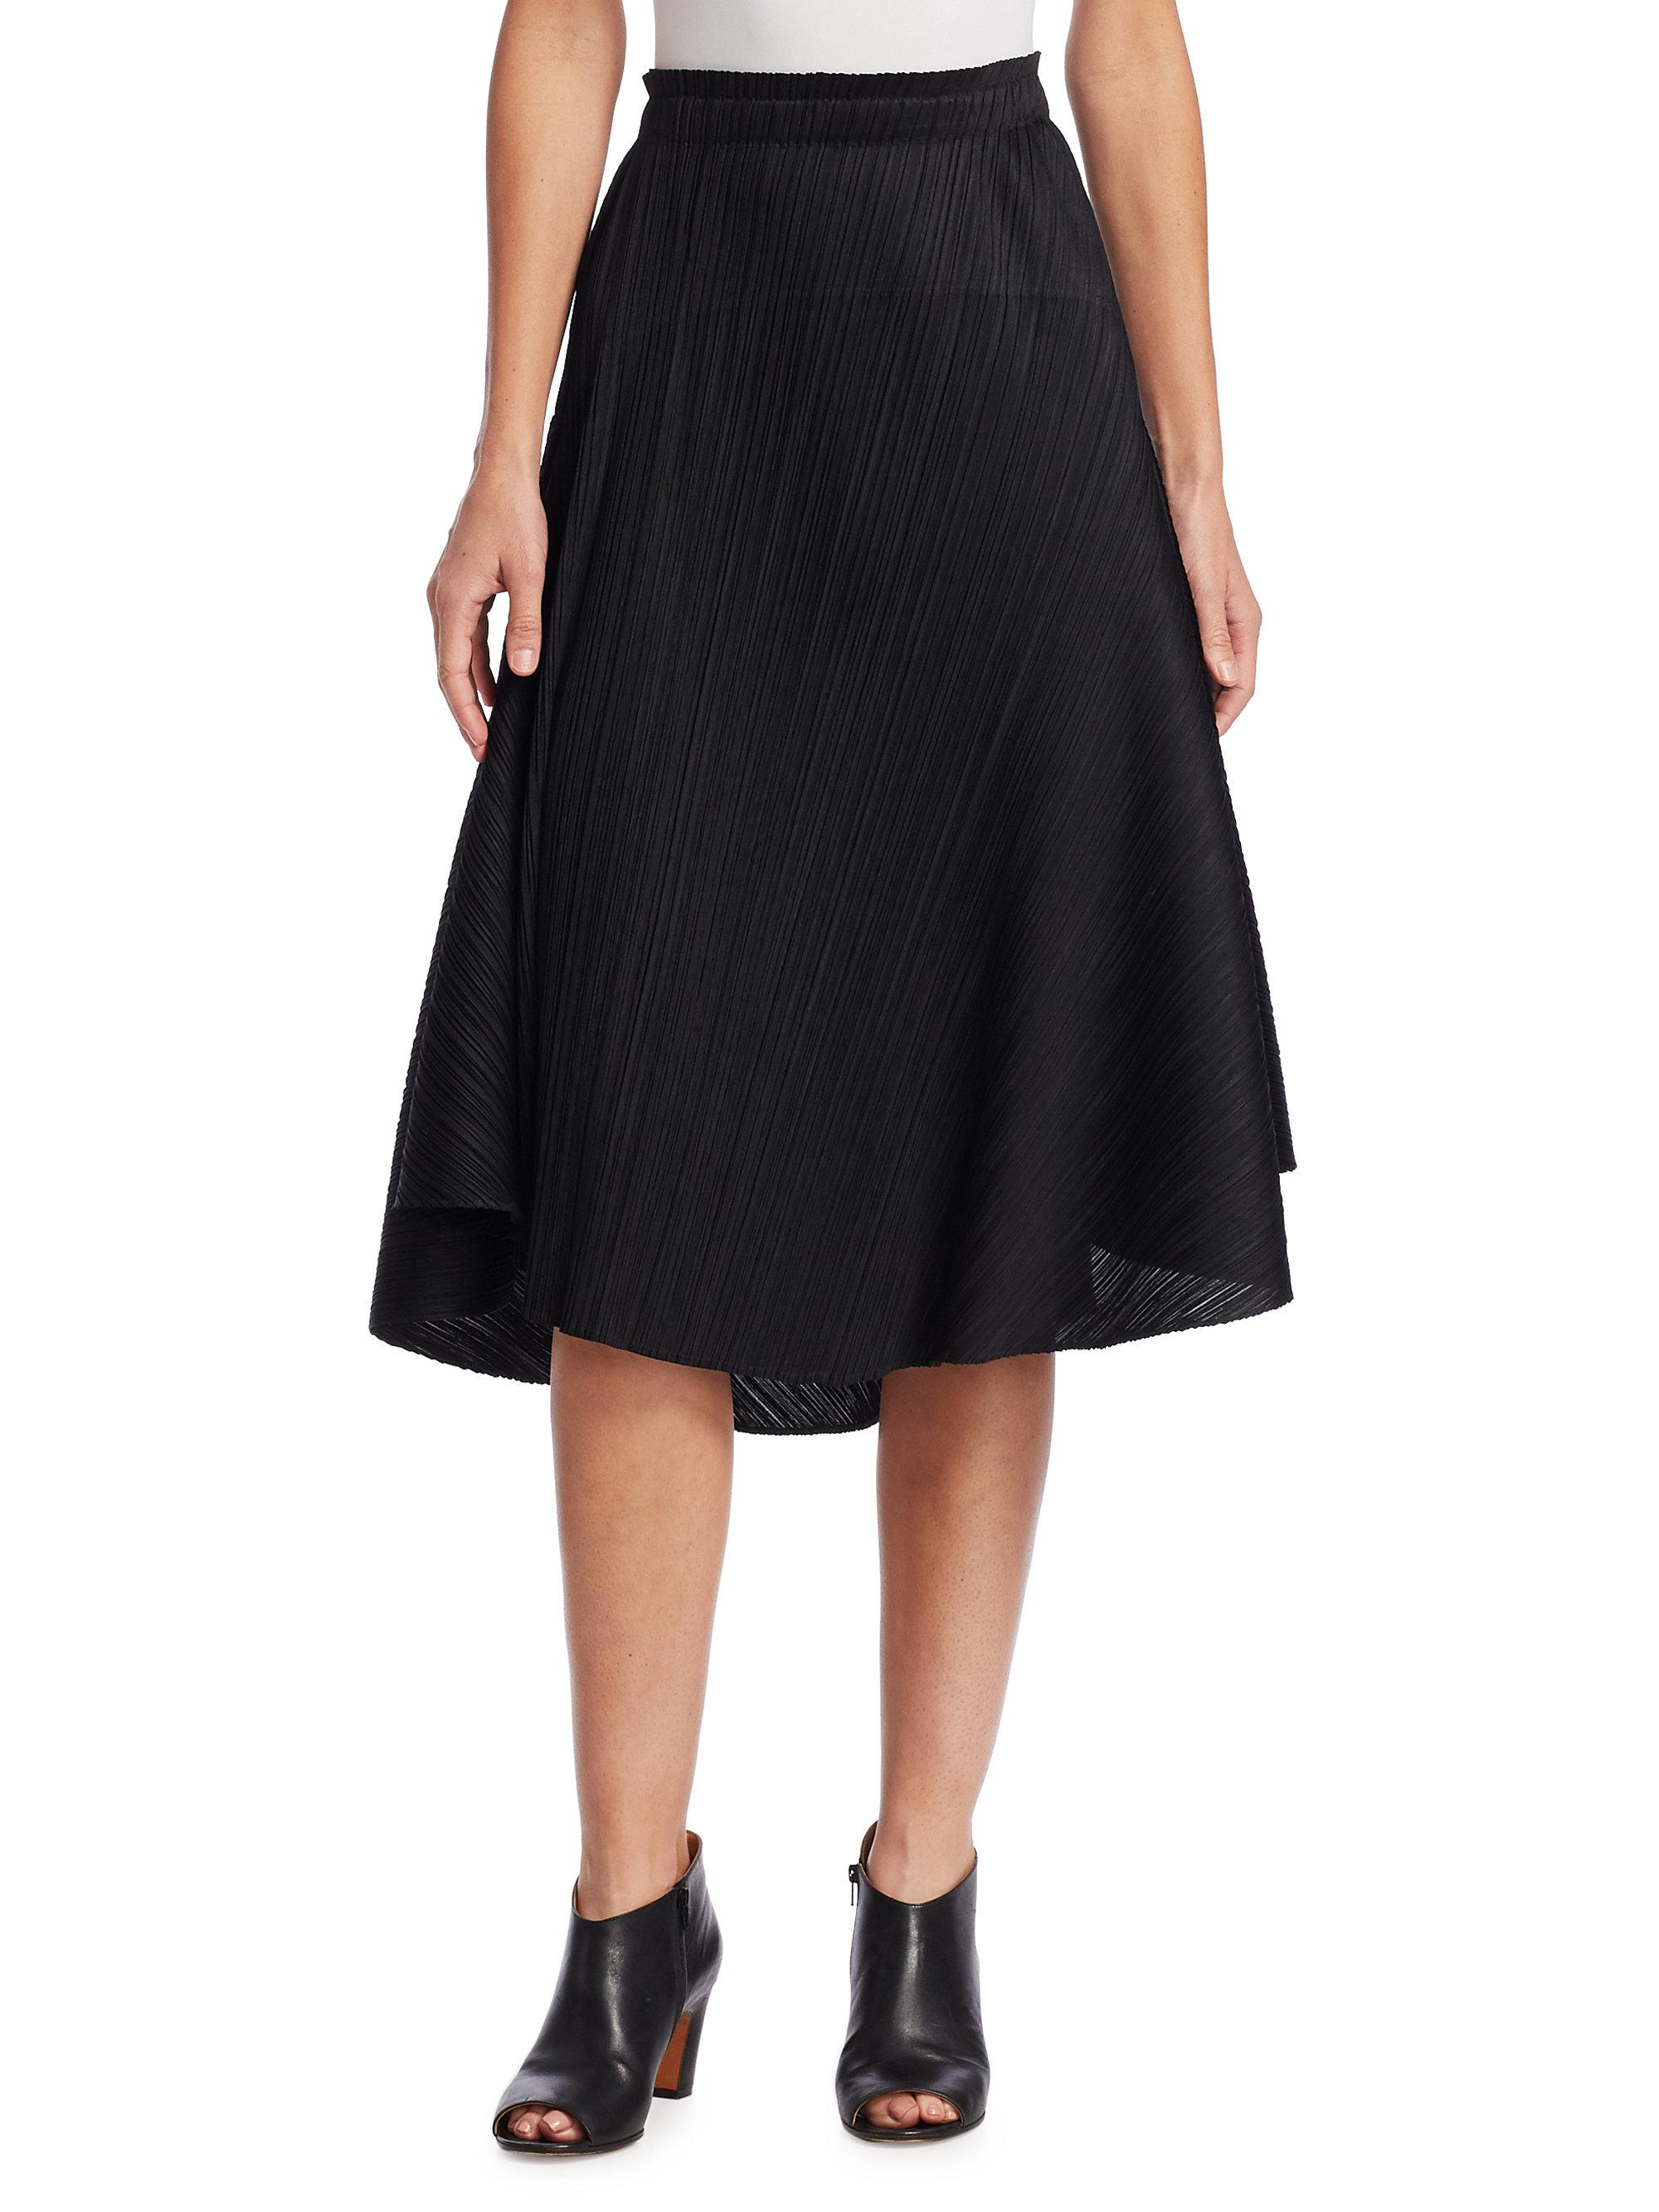 Lyst - Pleats Please Issey Miyake Pleated Circle Skirt in . 9412c41060d83